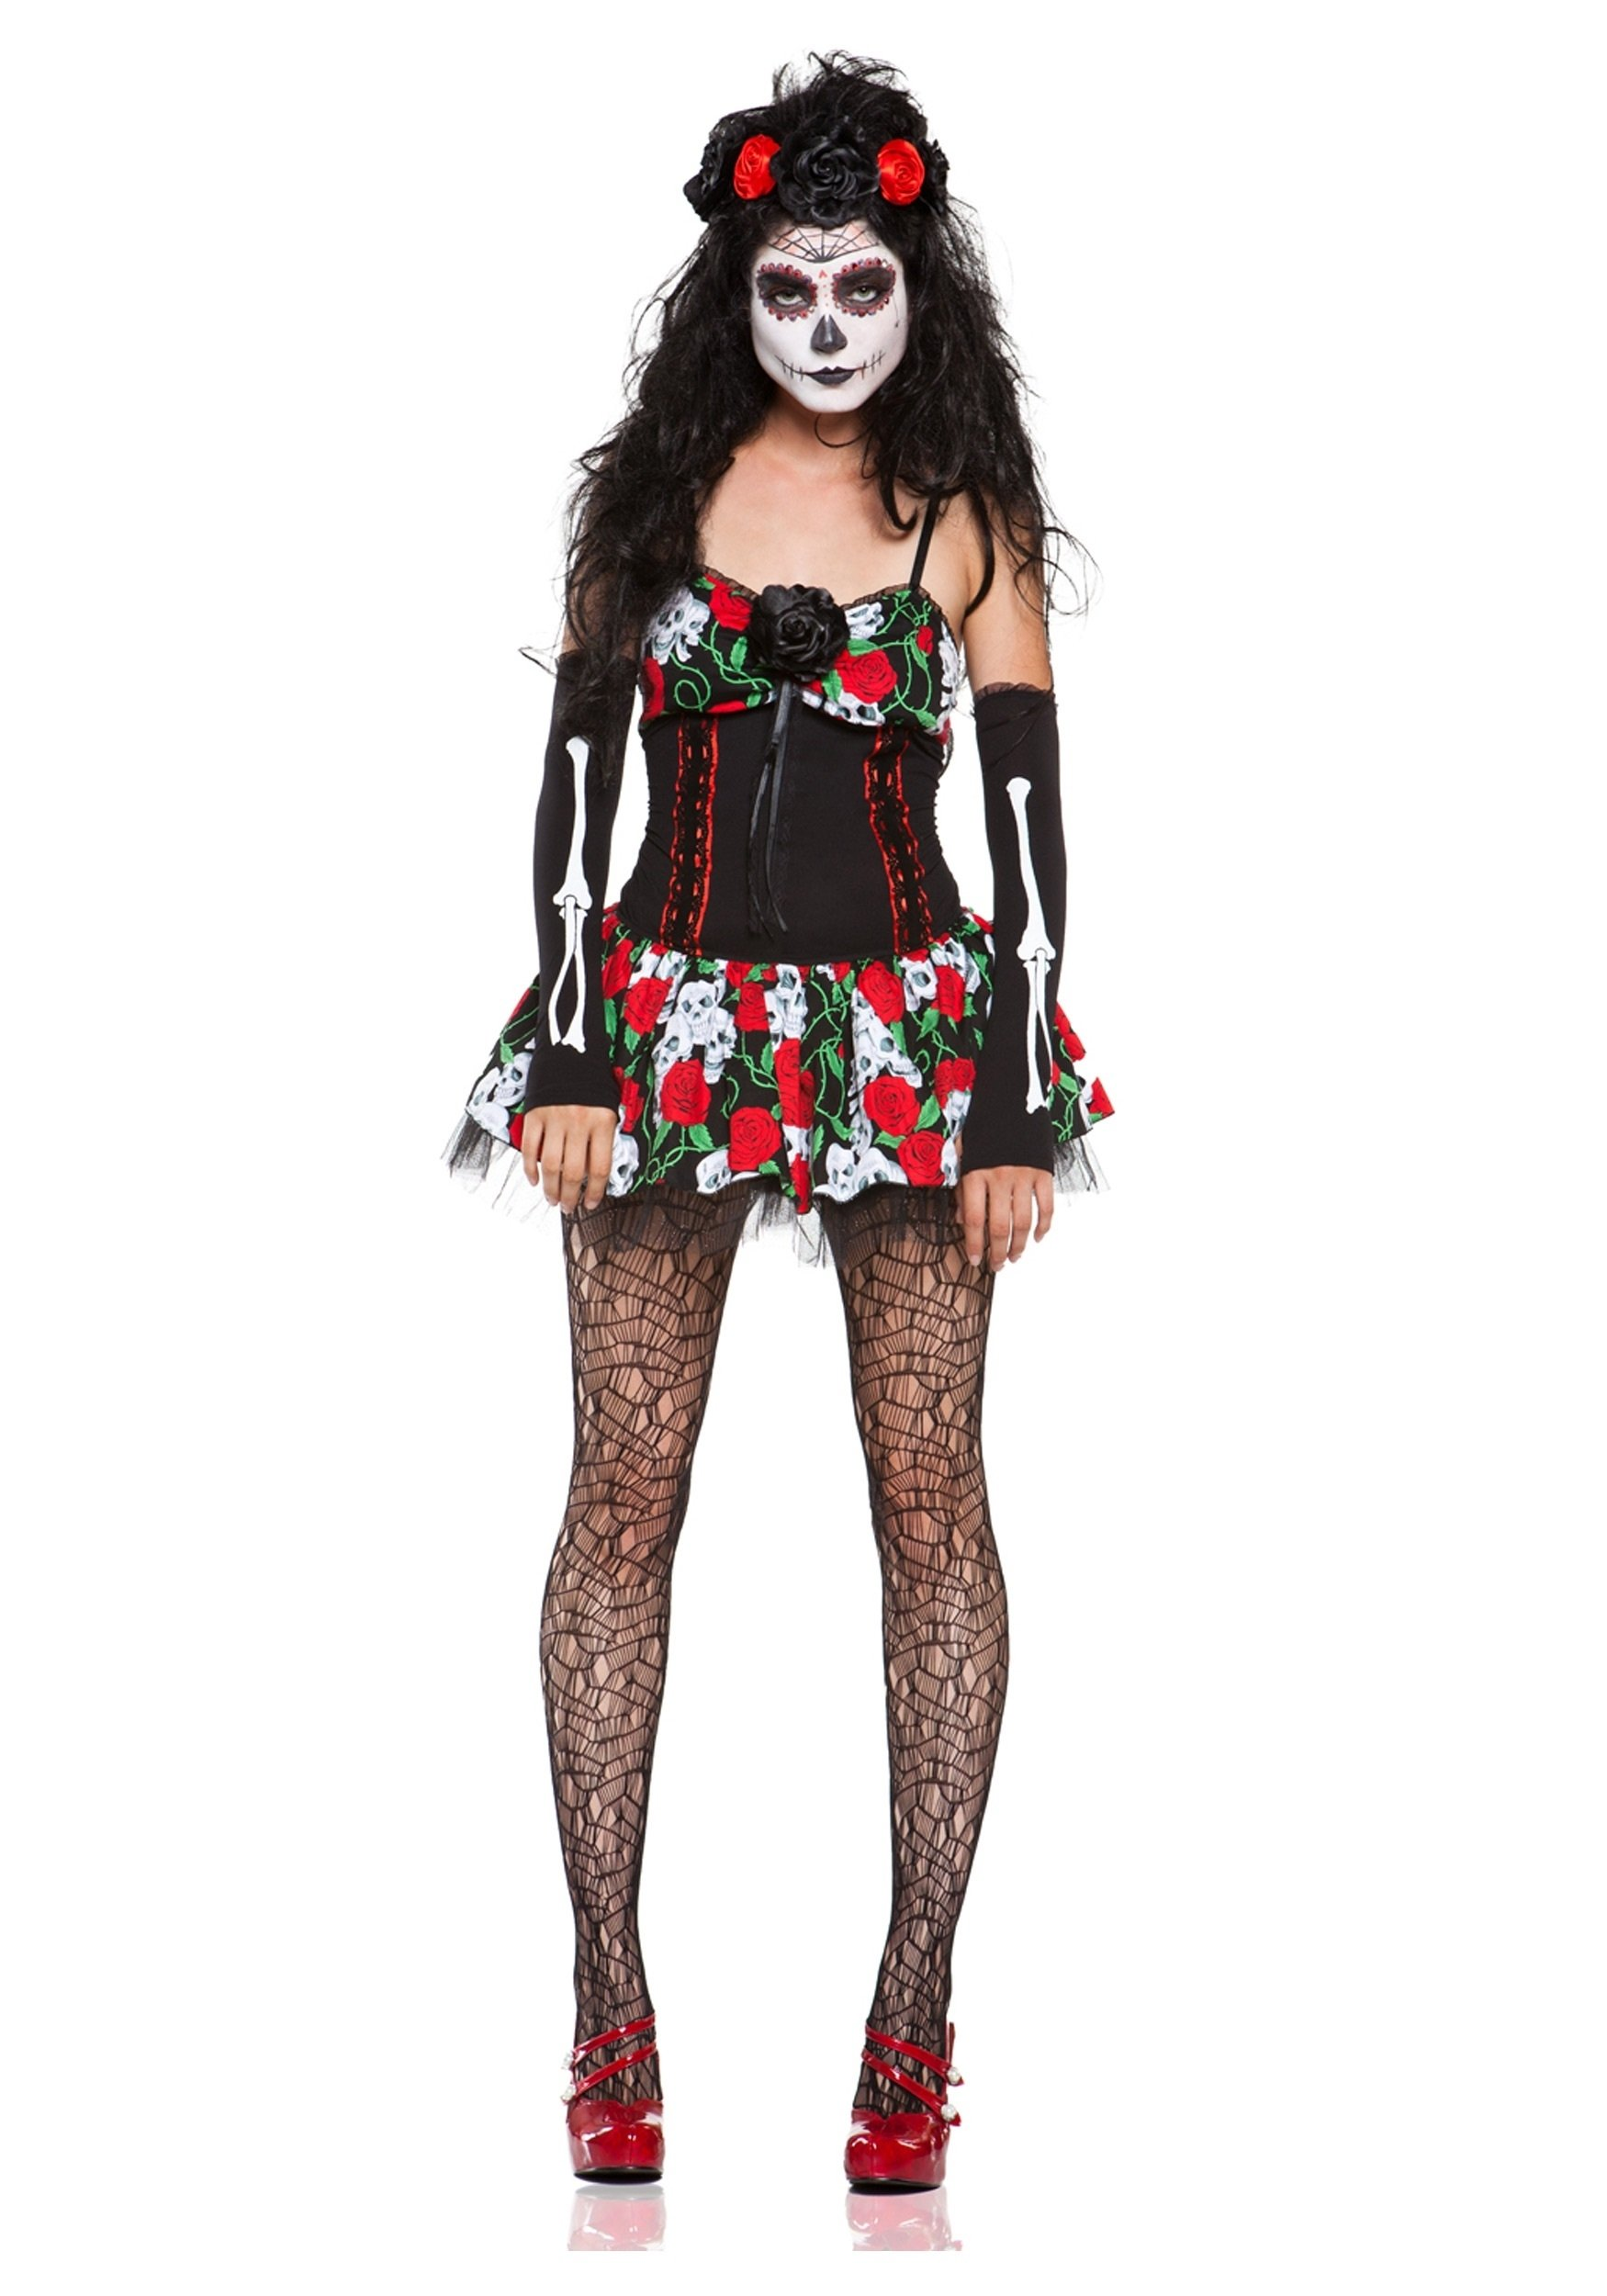 10 Great Day Of The Dead Halloween Costume Ideas dahlia of the dead costume halloween costume ideas 2016 2020